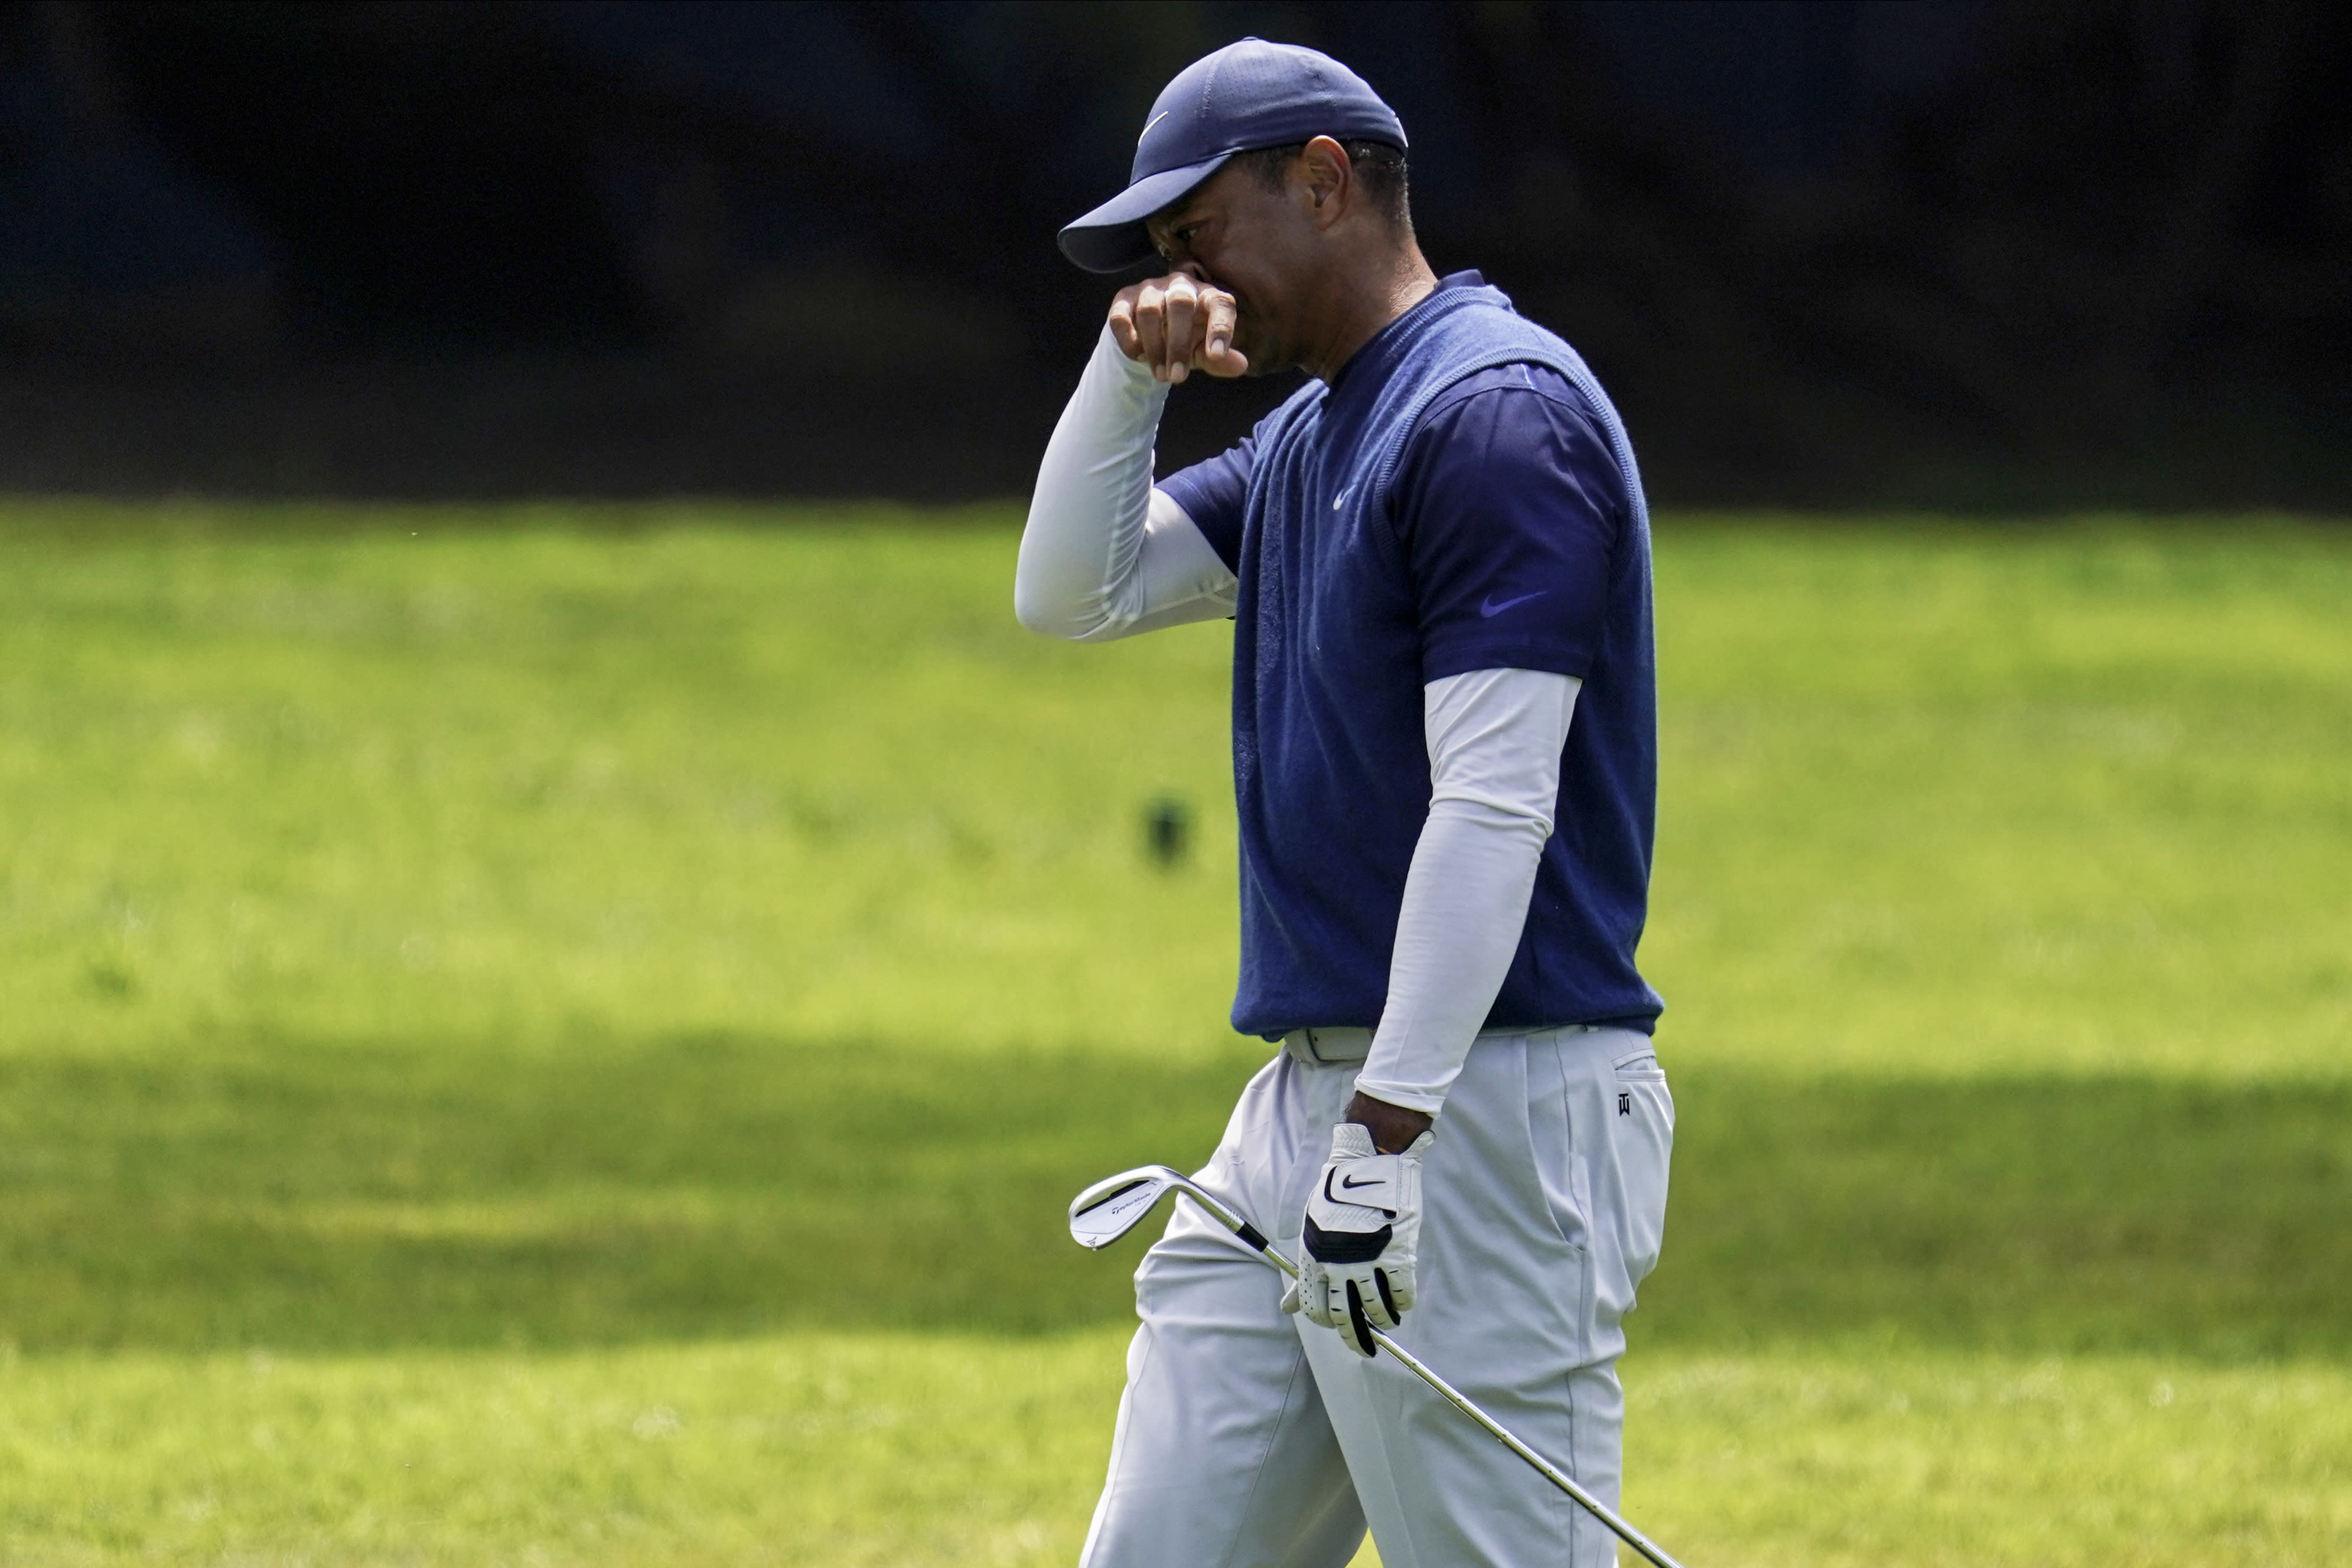 Tiger Woods walks to the 12th green during the third round of the PGA Championship golf tournament at TPC Harding Park Saturday, Aug. 8, 2020, in San Francisco. (AP Photo/Jeff Chiu)